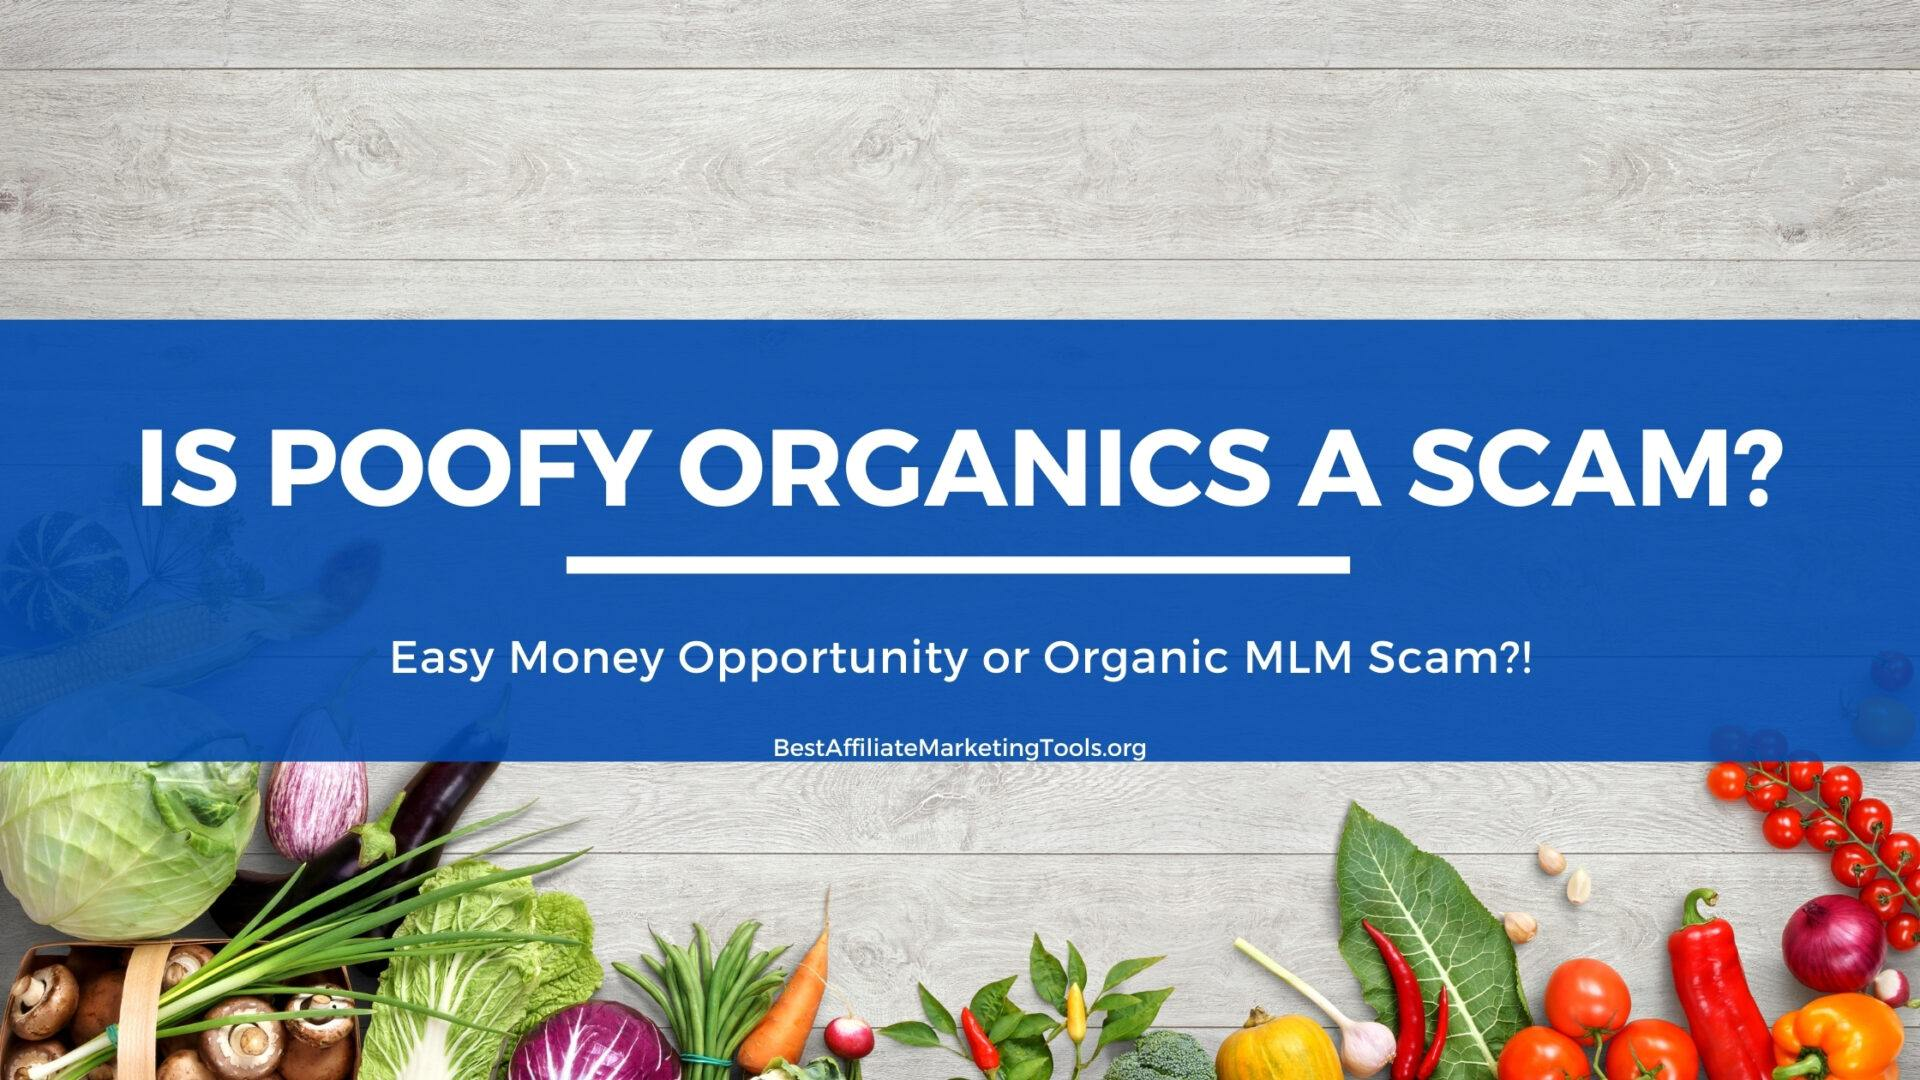 Is Poofy Organics a Scam